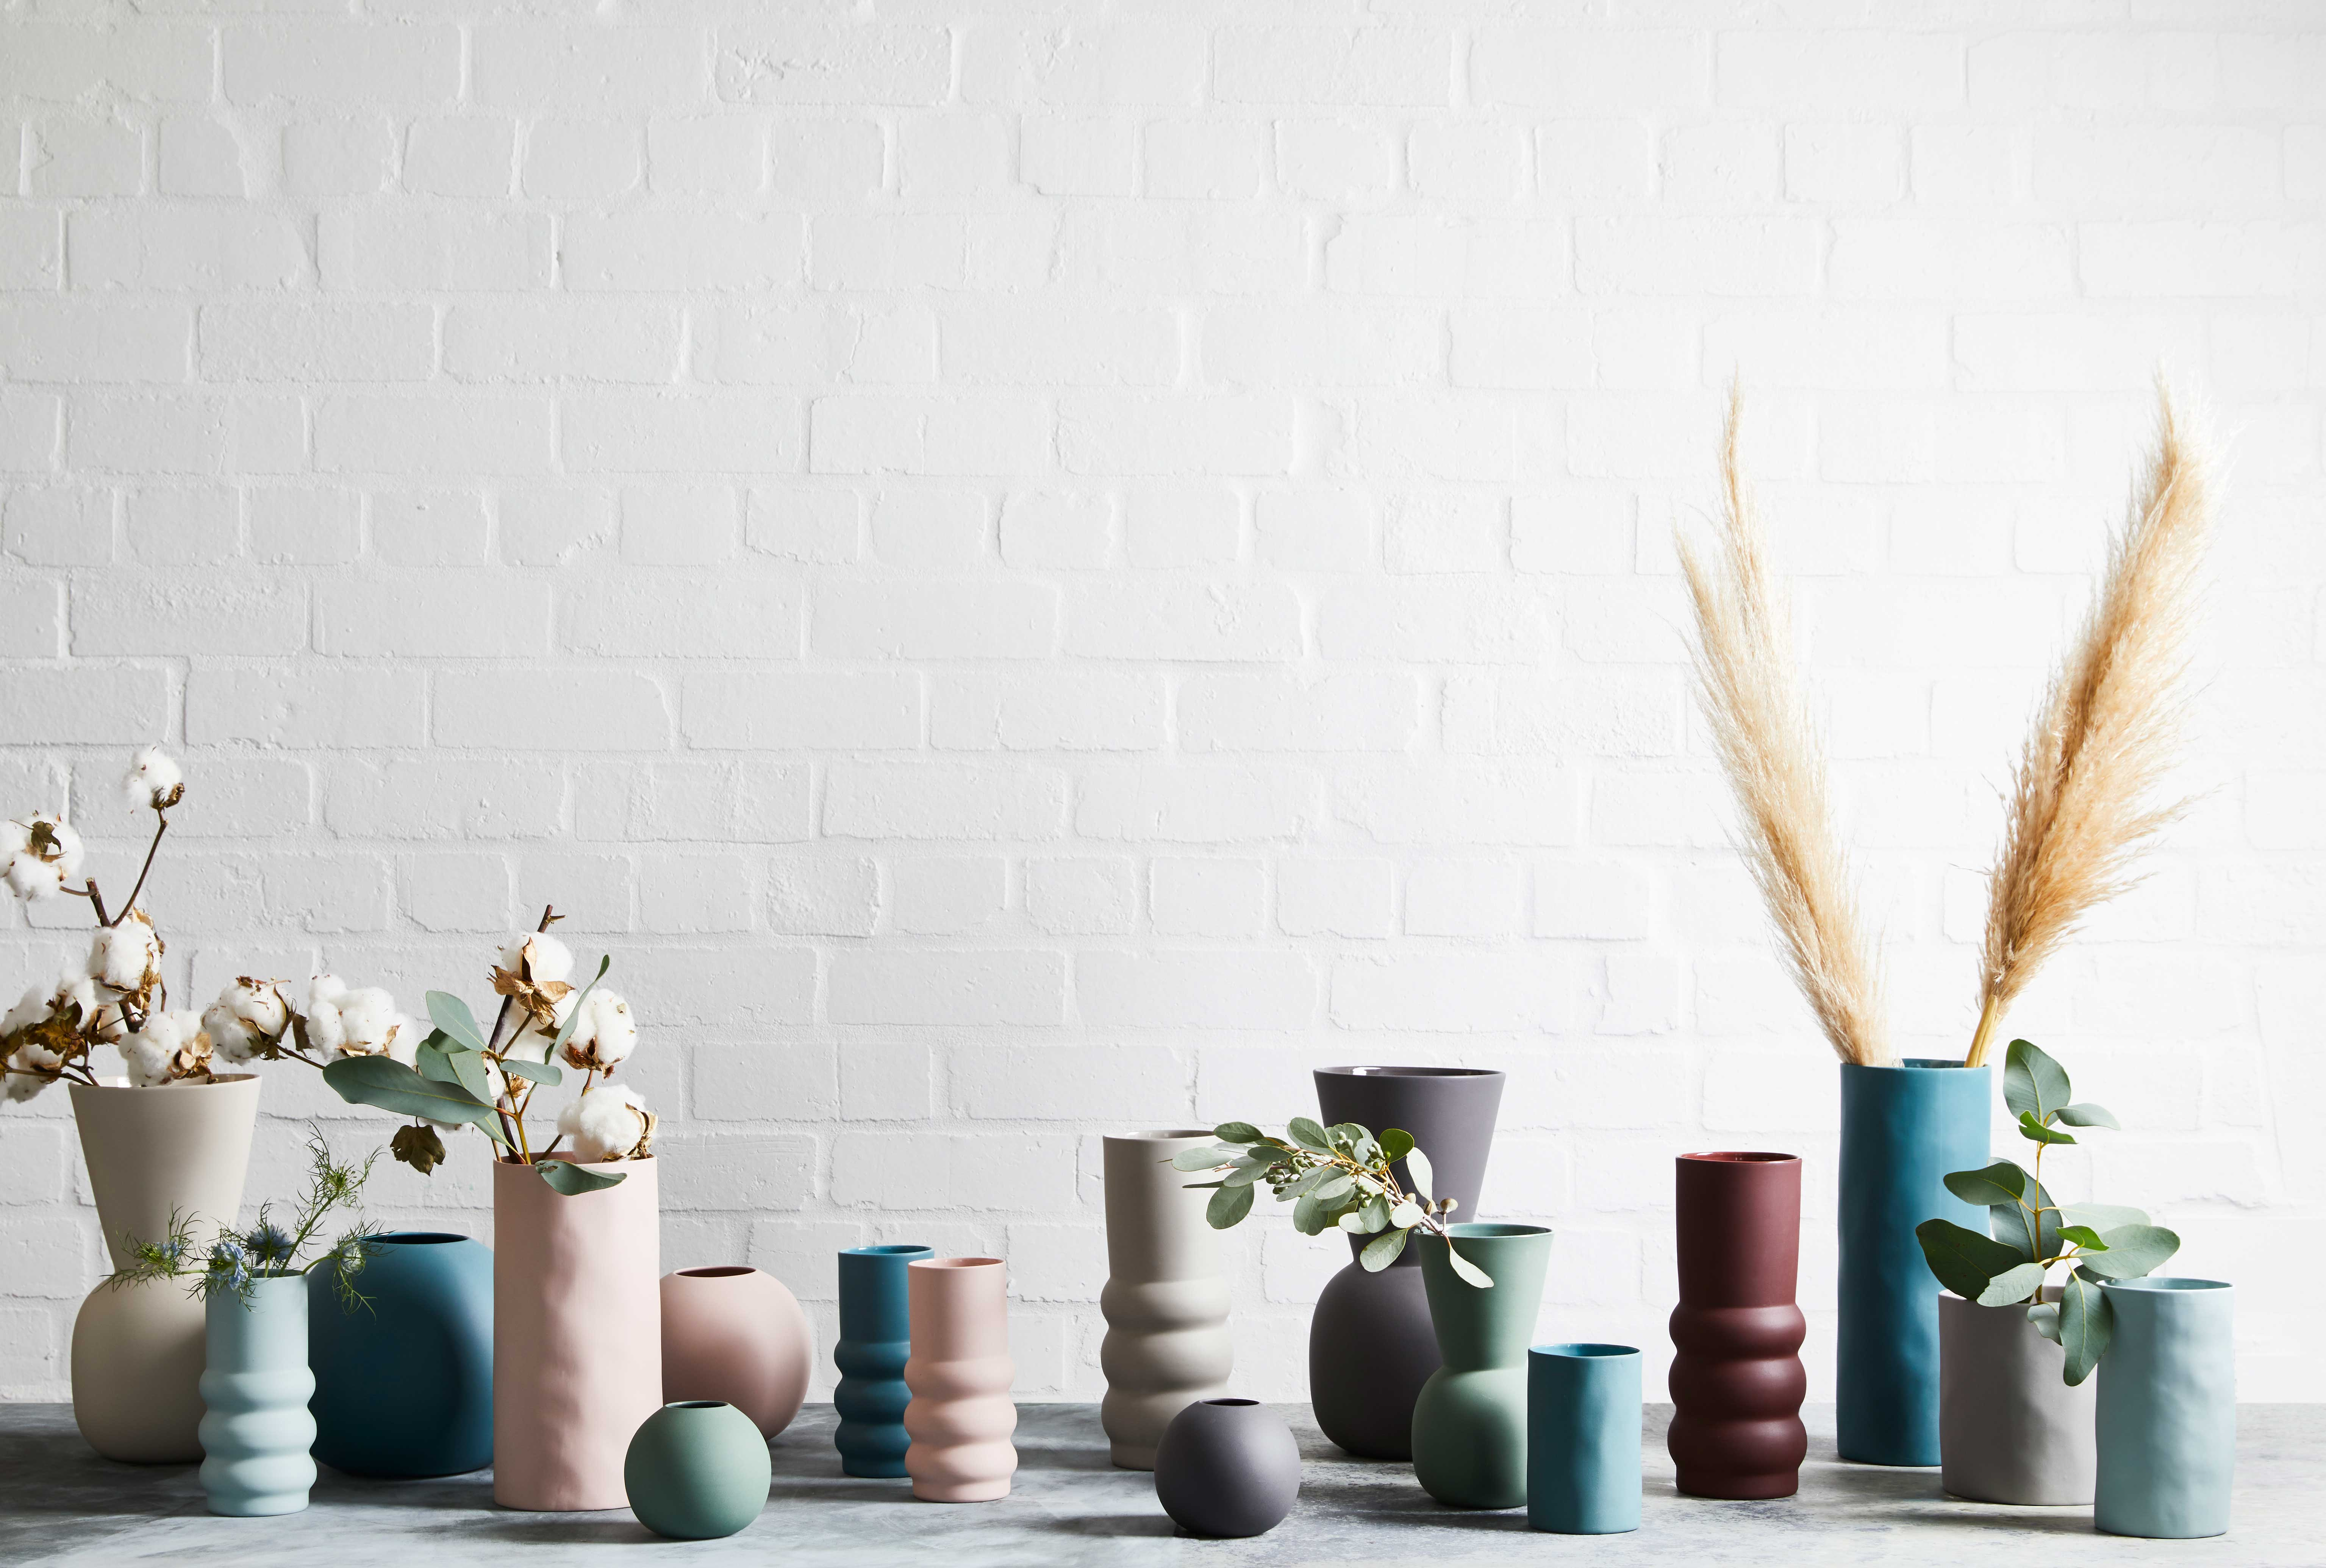 NareenHolloway of Marmoset Found on Building her Thriving Homewares Business